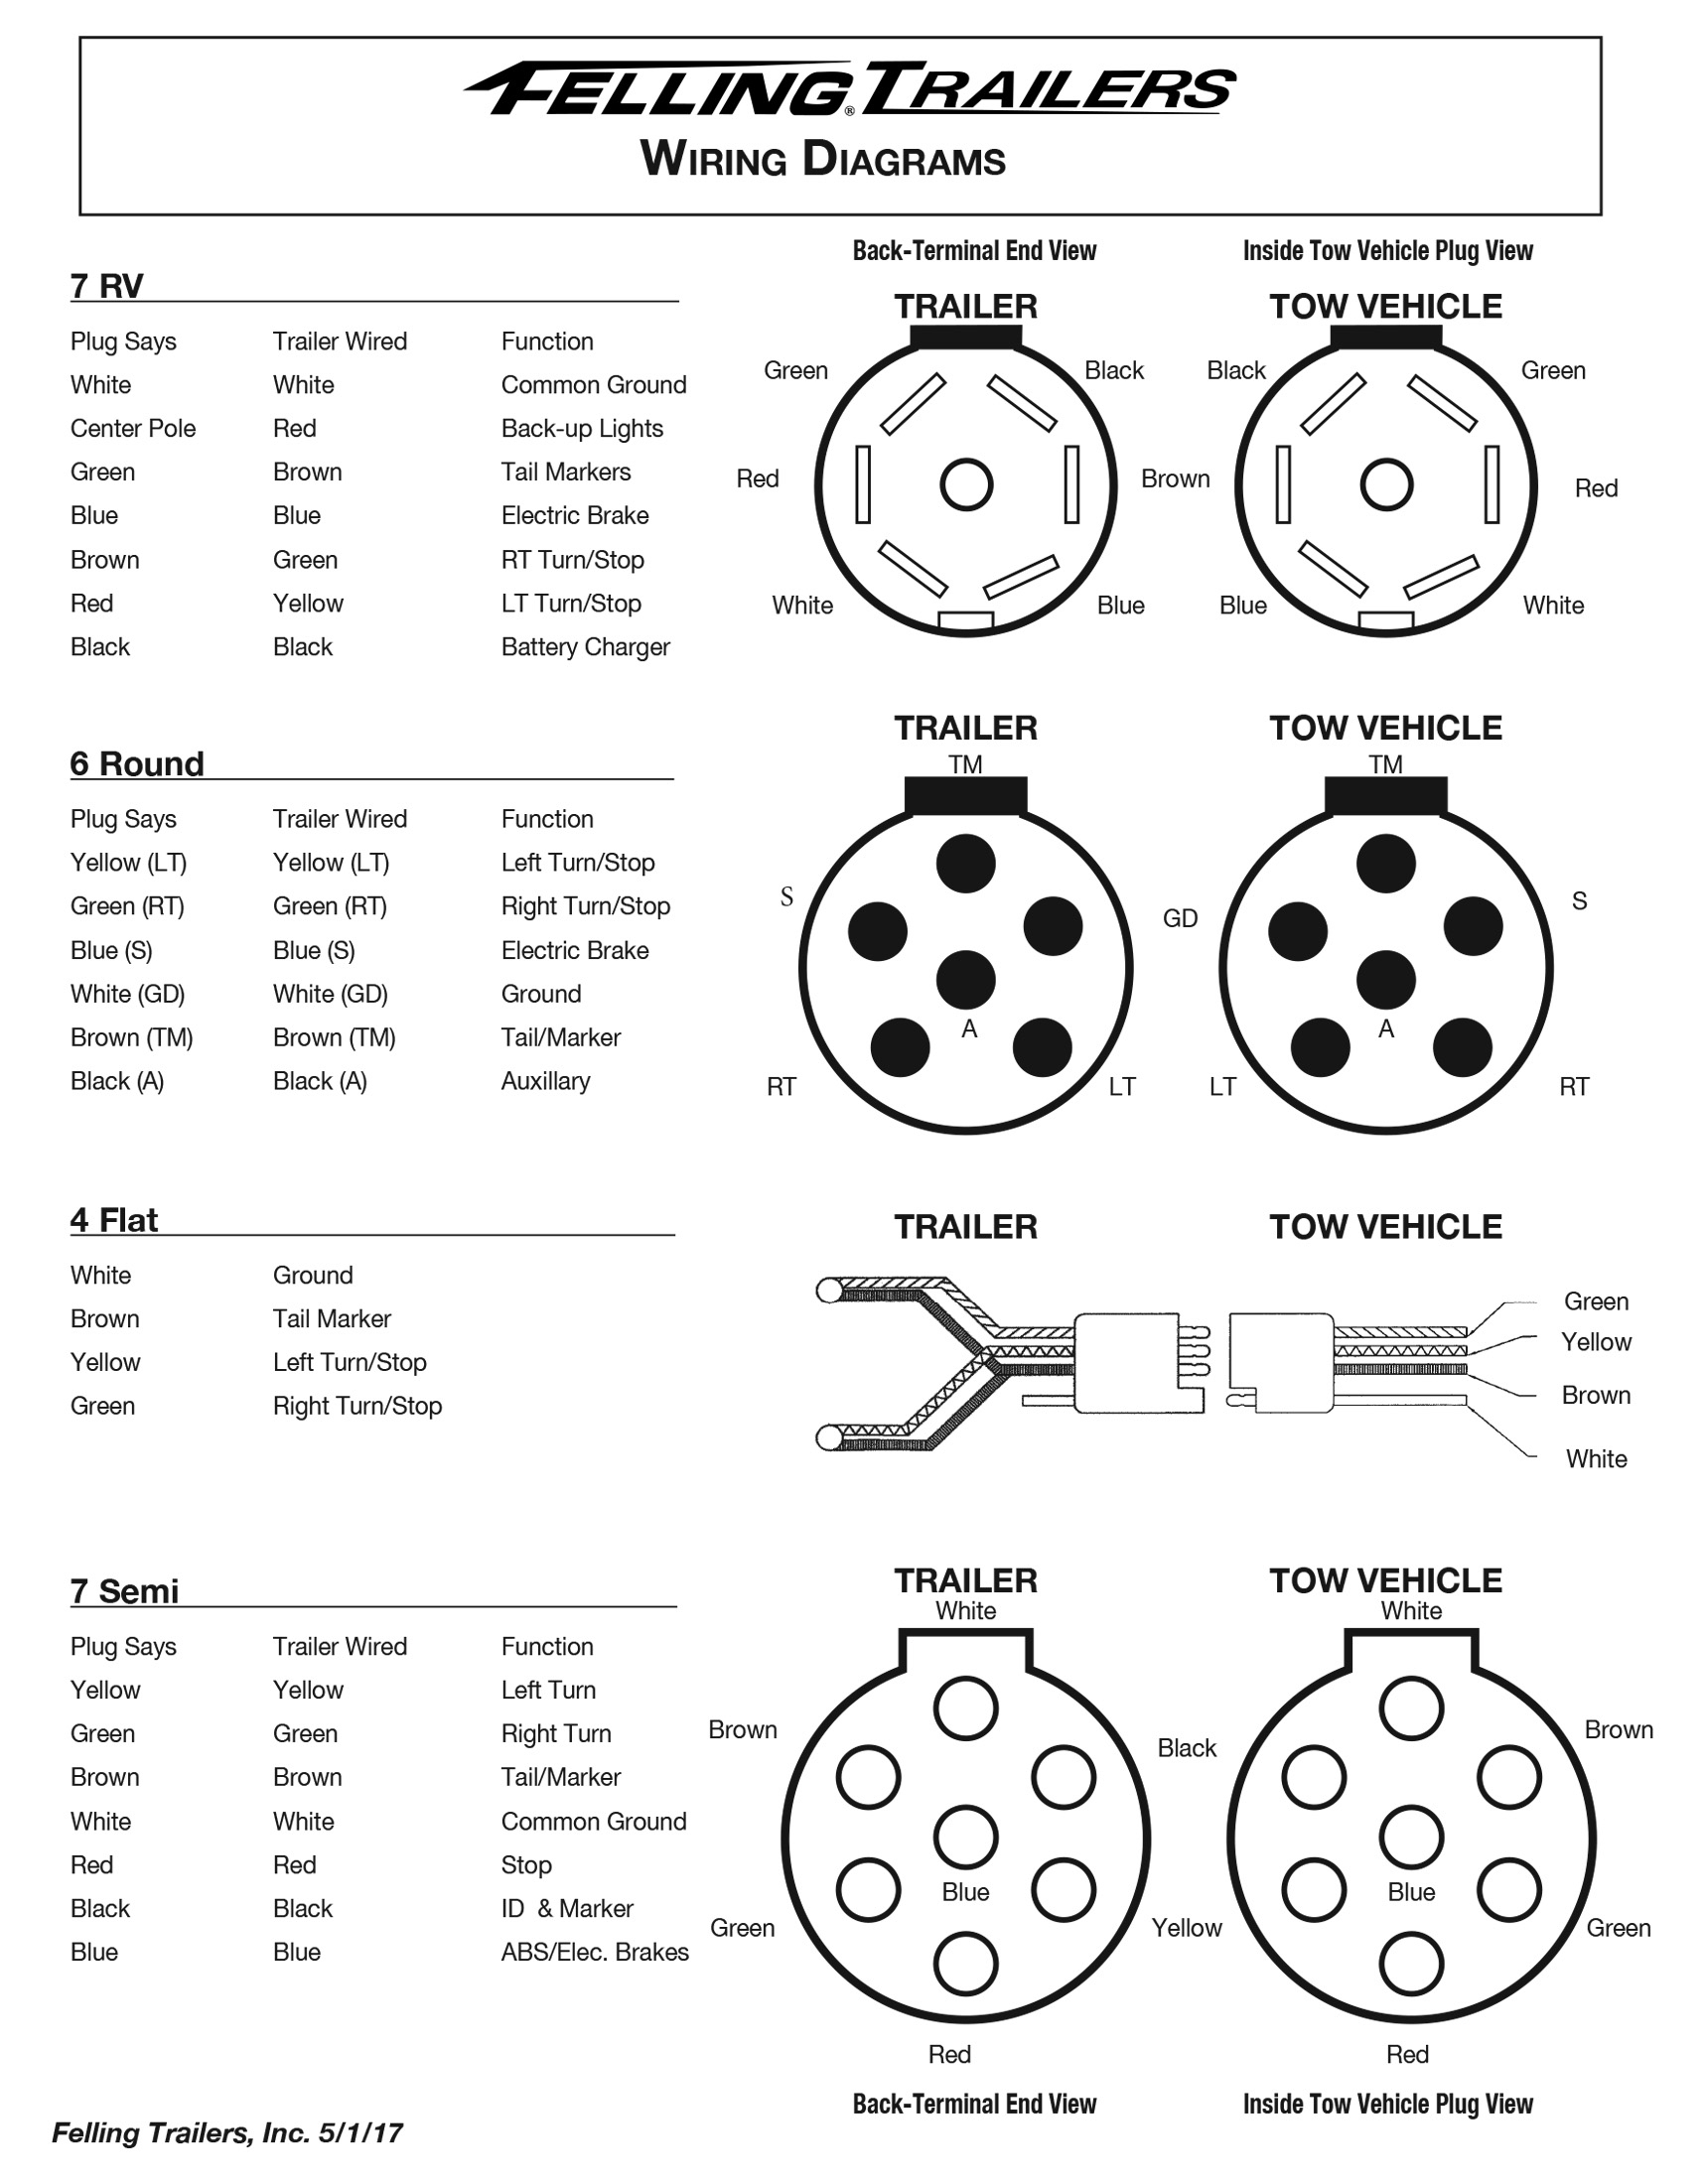 Service- Felling Trailers Wiring Diagrams, Wheel Toque - Trailer Pigtail Wiring Diagram